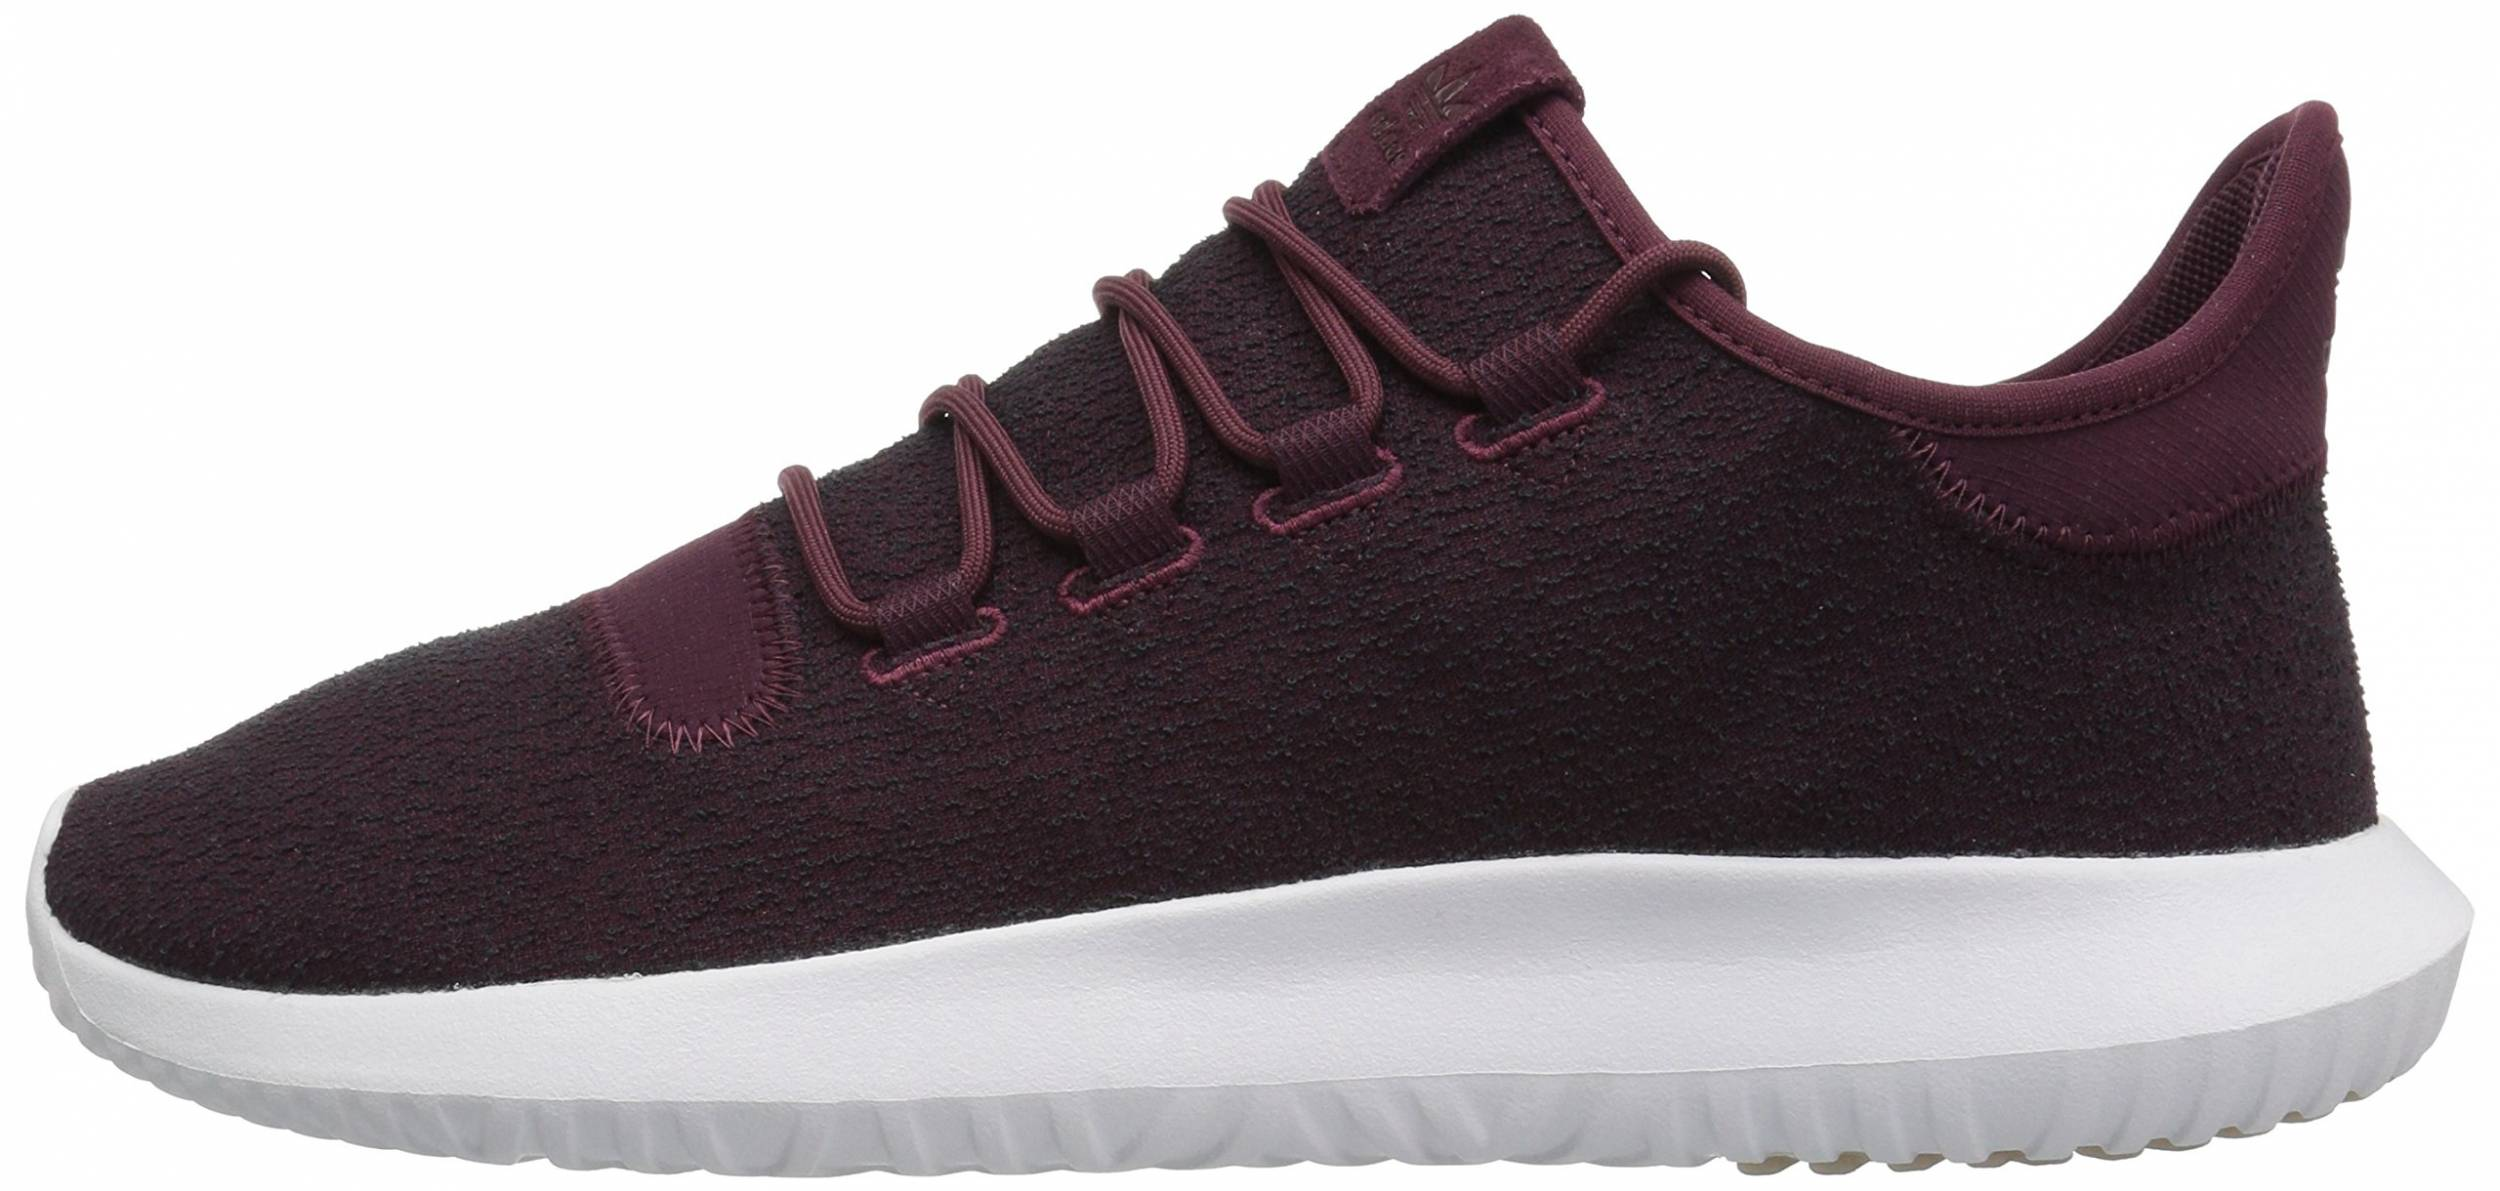 Adidas Tubular Shadow sneakers in 10 colors (only $50)   RunRepeat